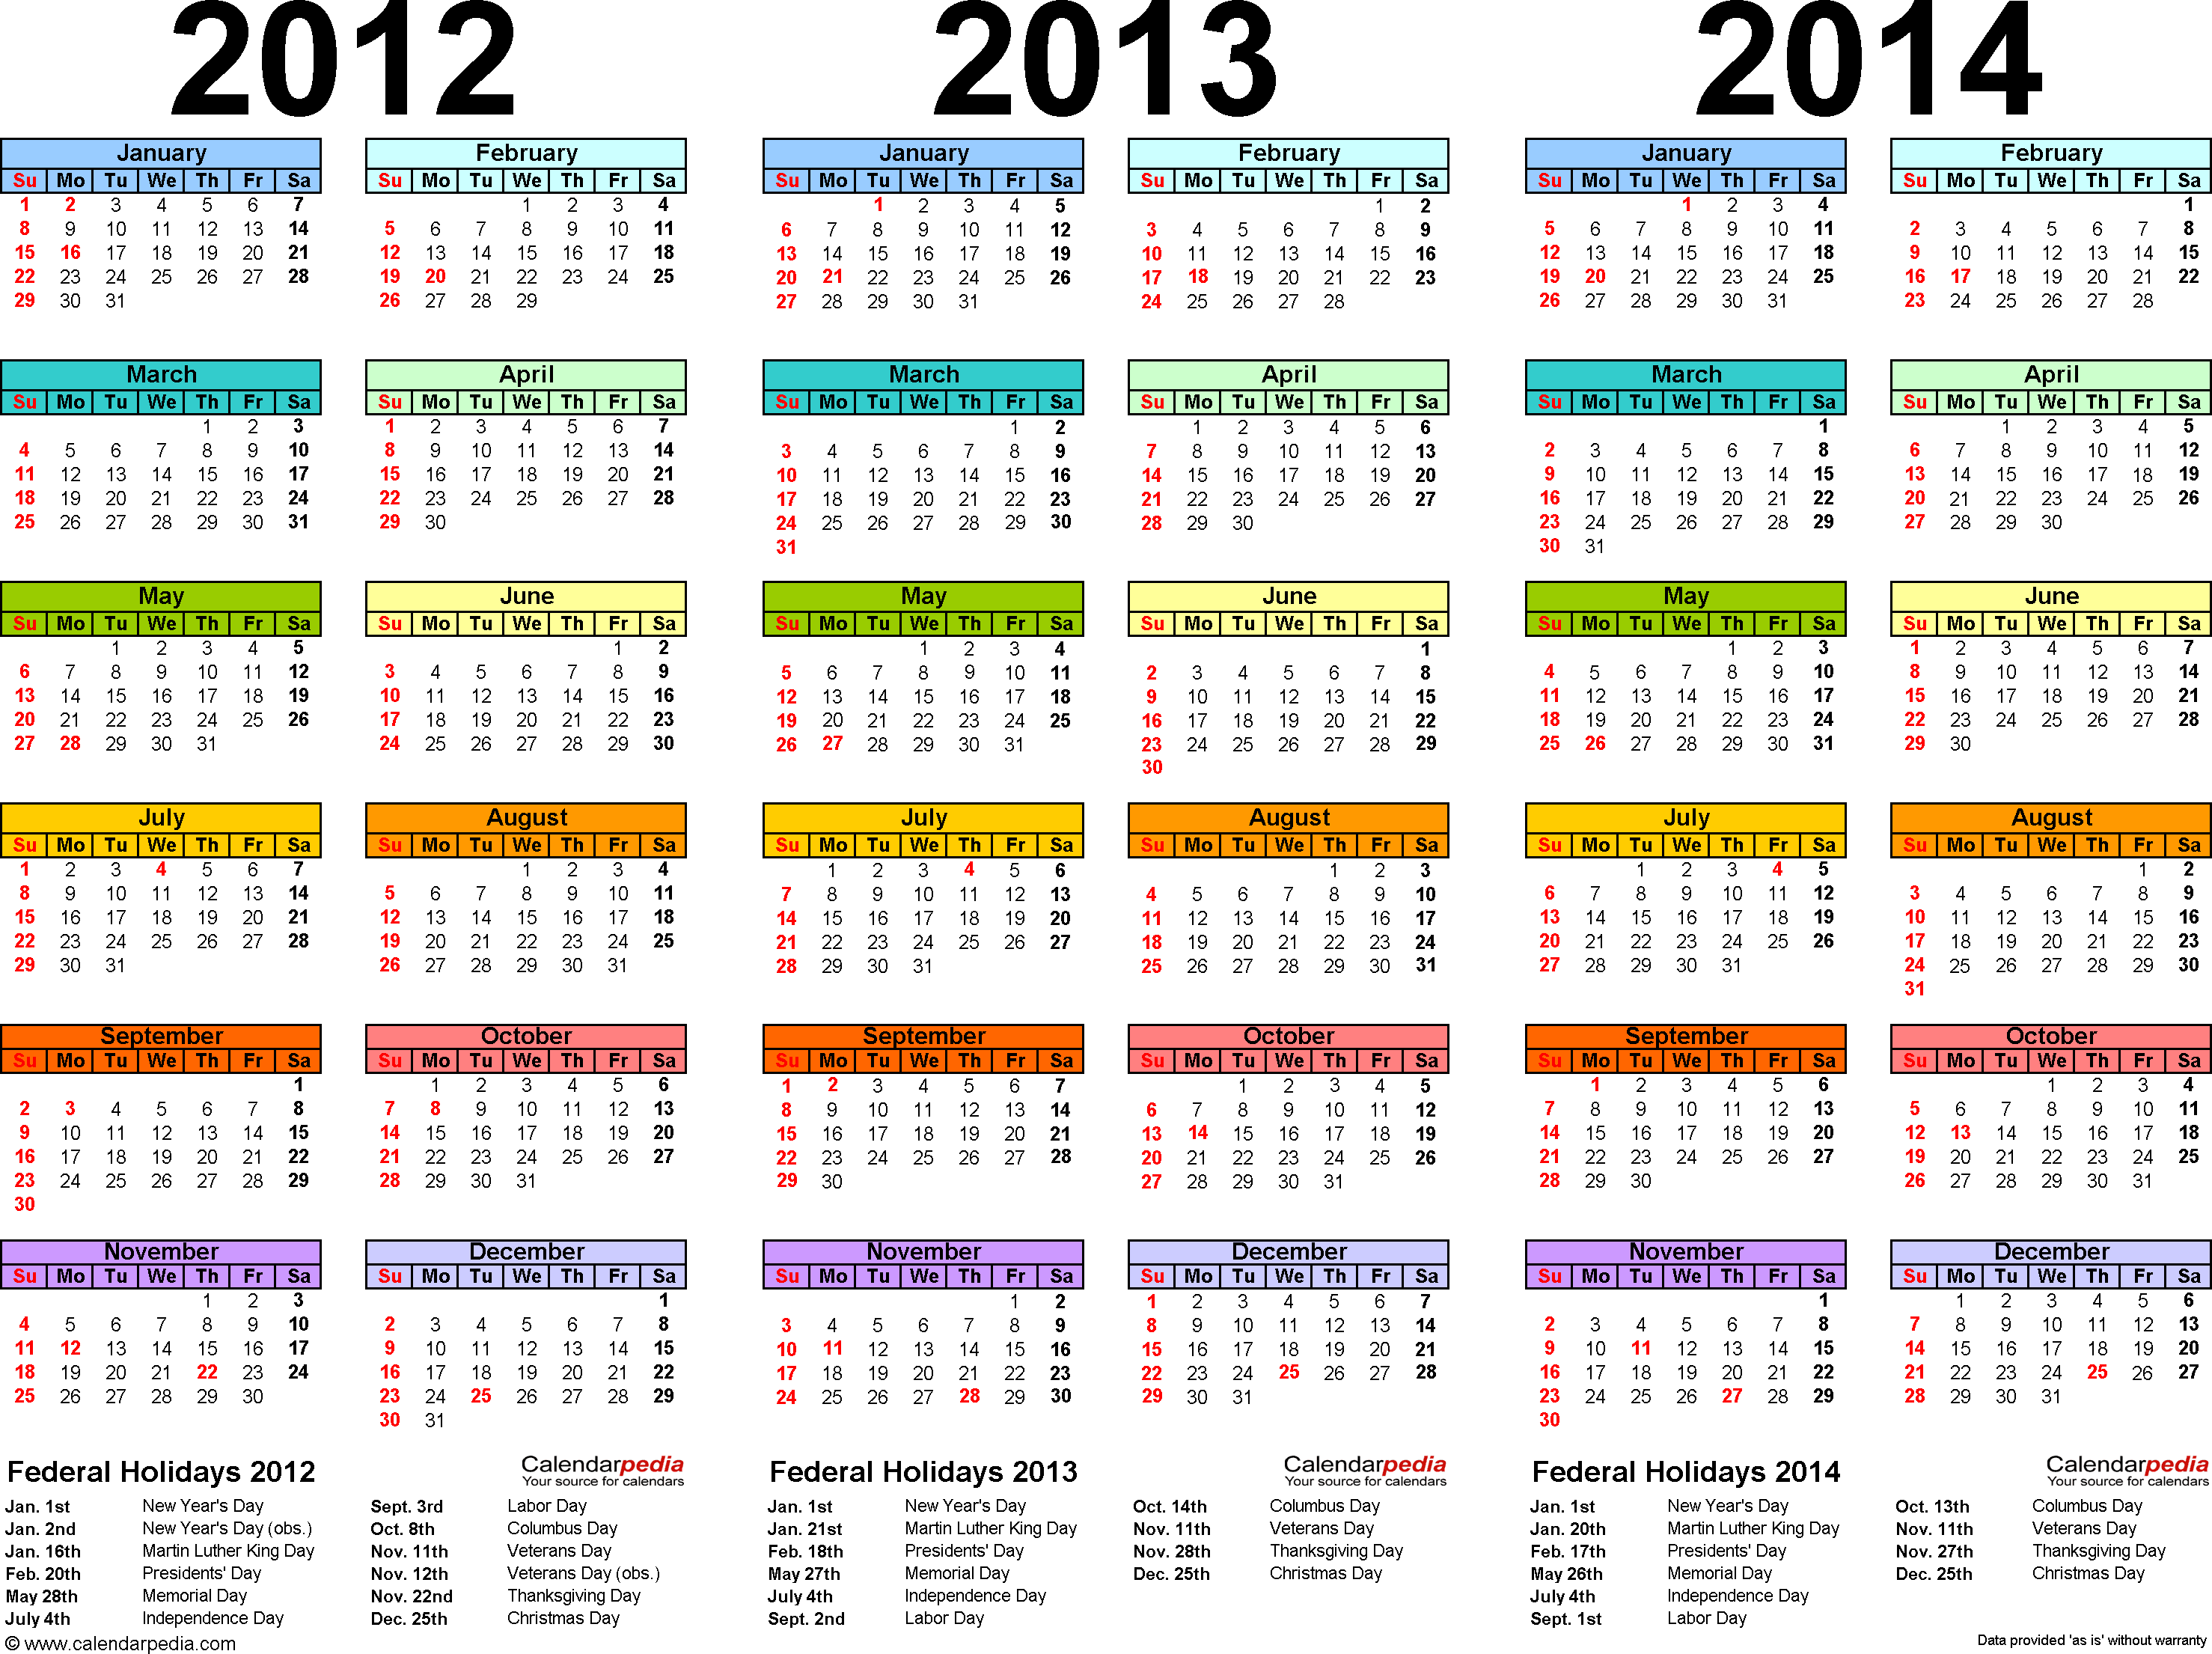 Template 1: Word template for three year calendar 2012-2014 (landscape orientation, 1 page, in color)